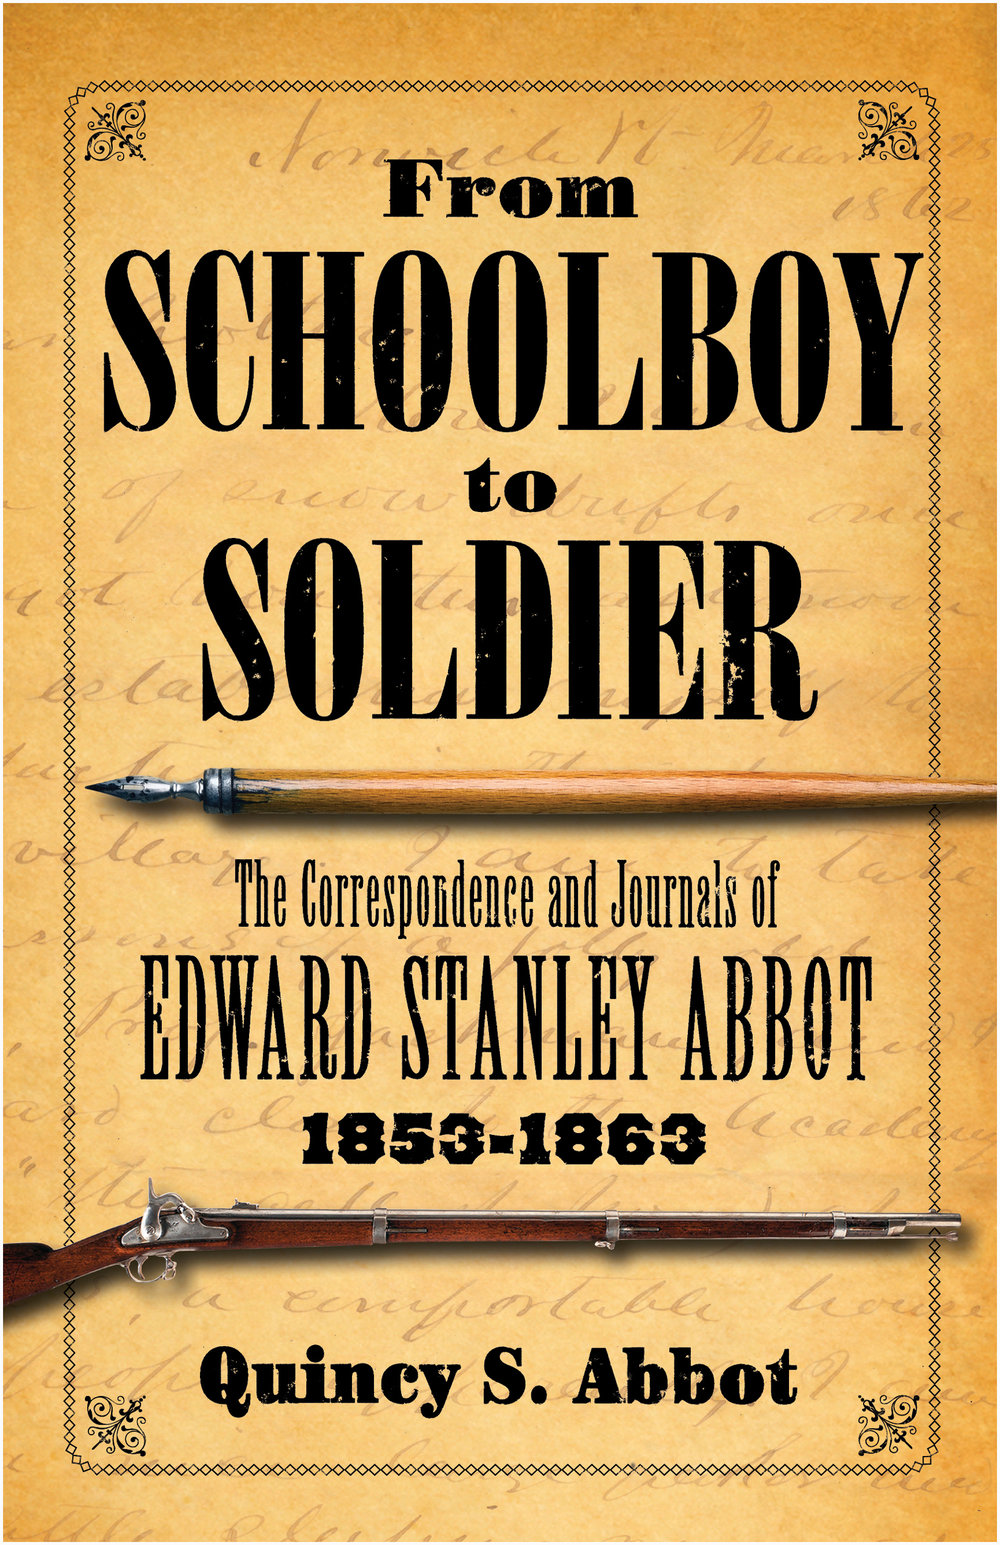 From Schoolboy to Soldier. An historical account of the Civil War.